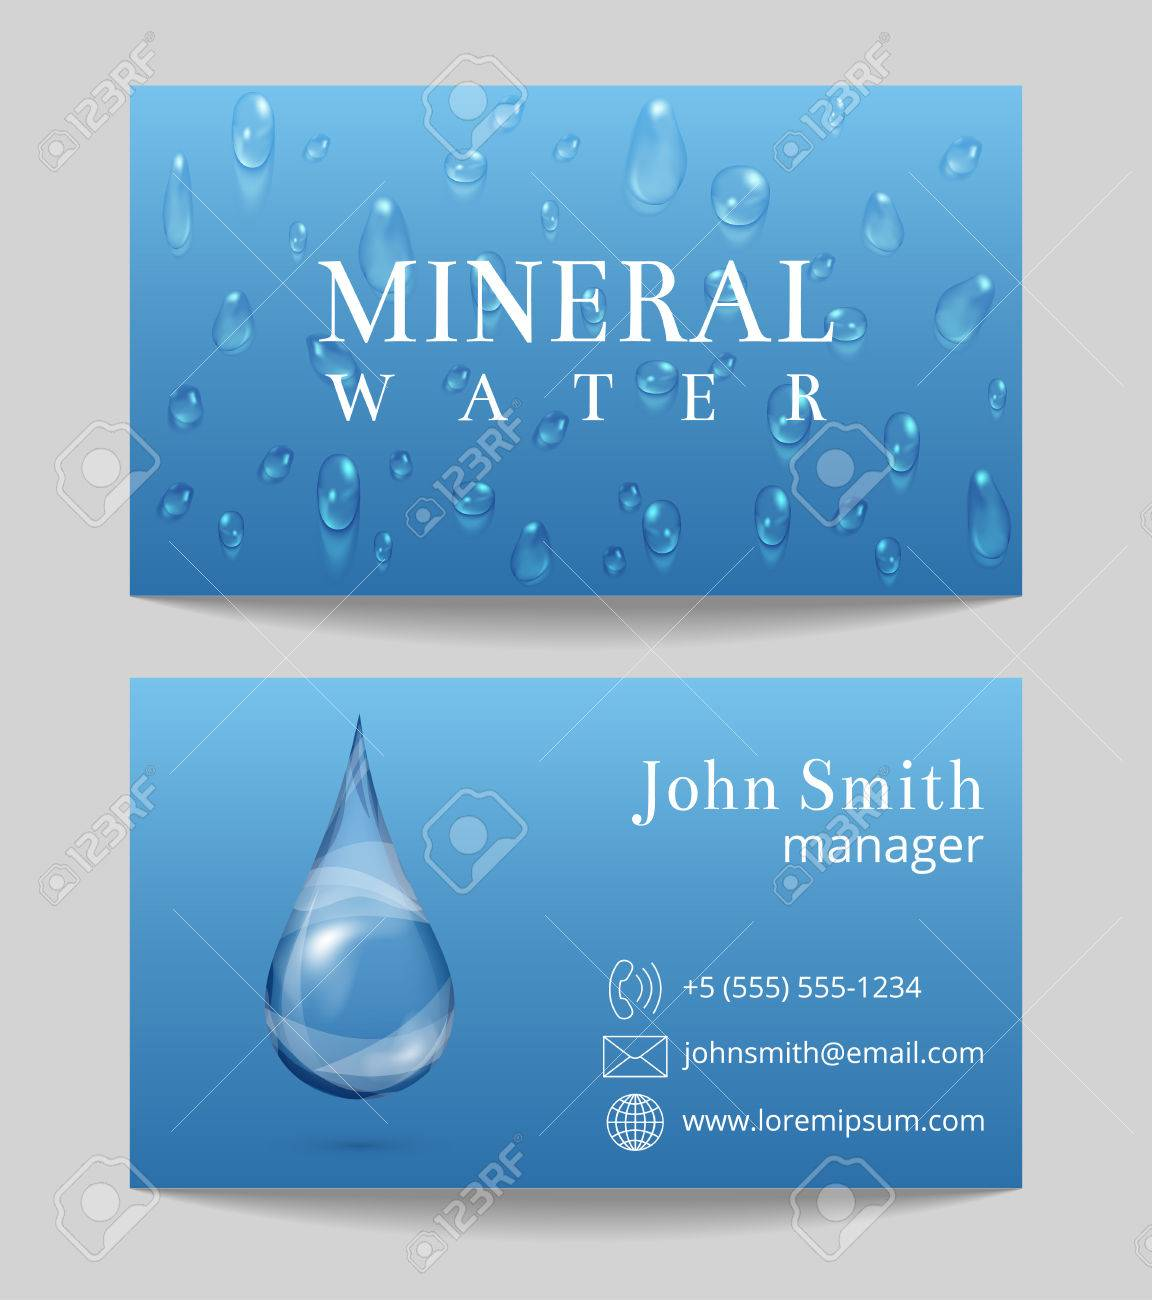 Mineral Water Delivery Business Card Both Sides Template. Drop ...